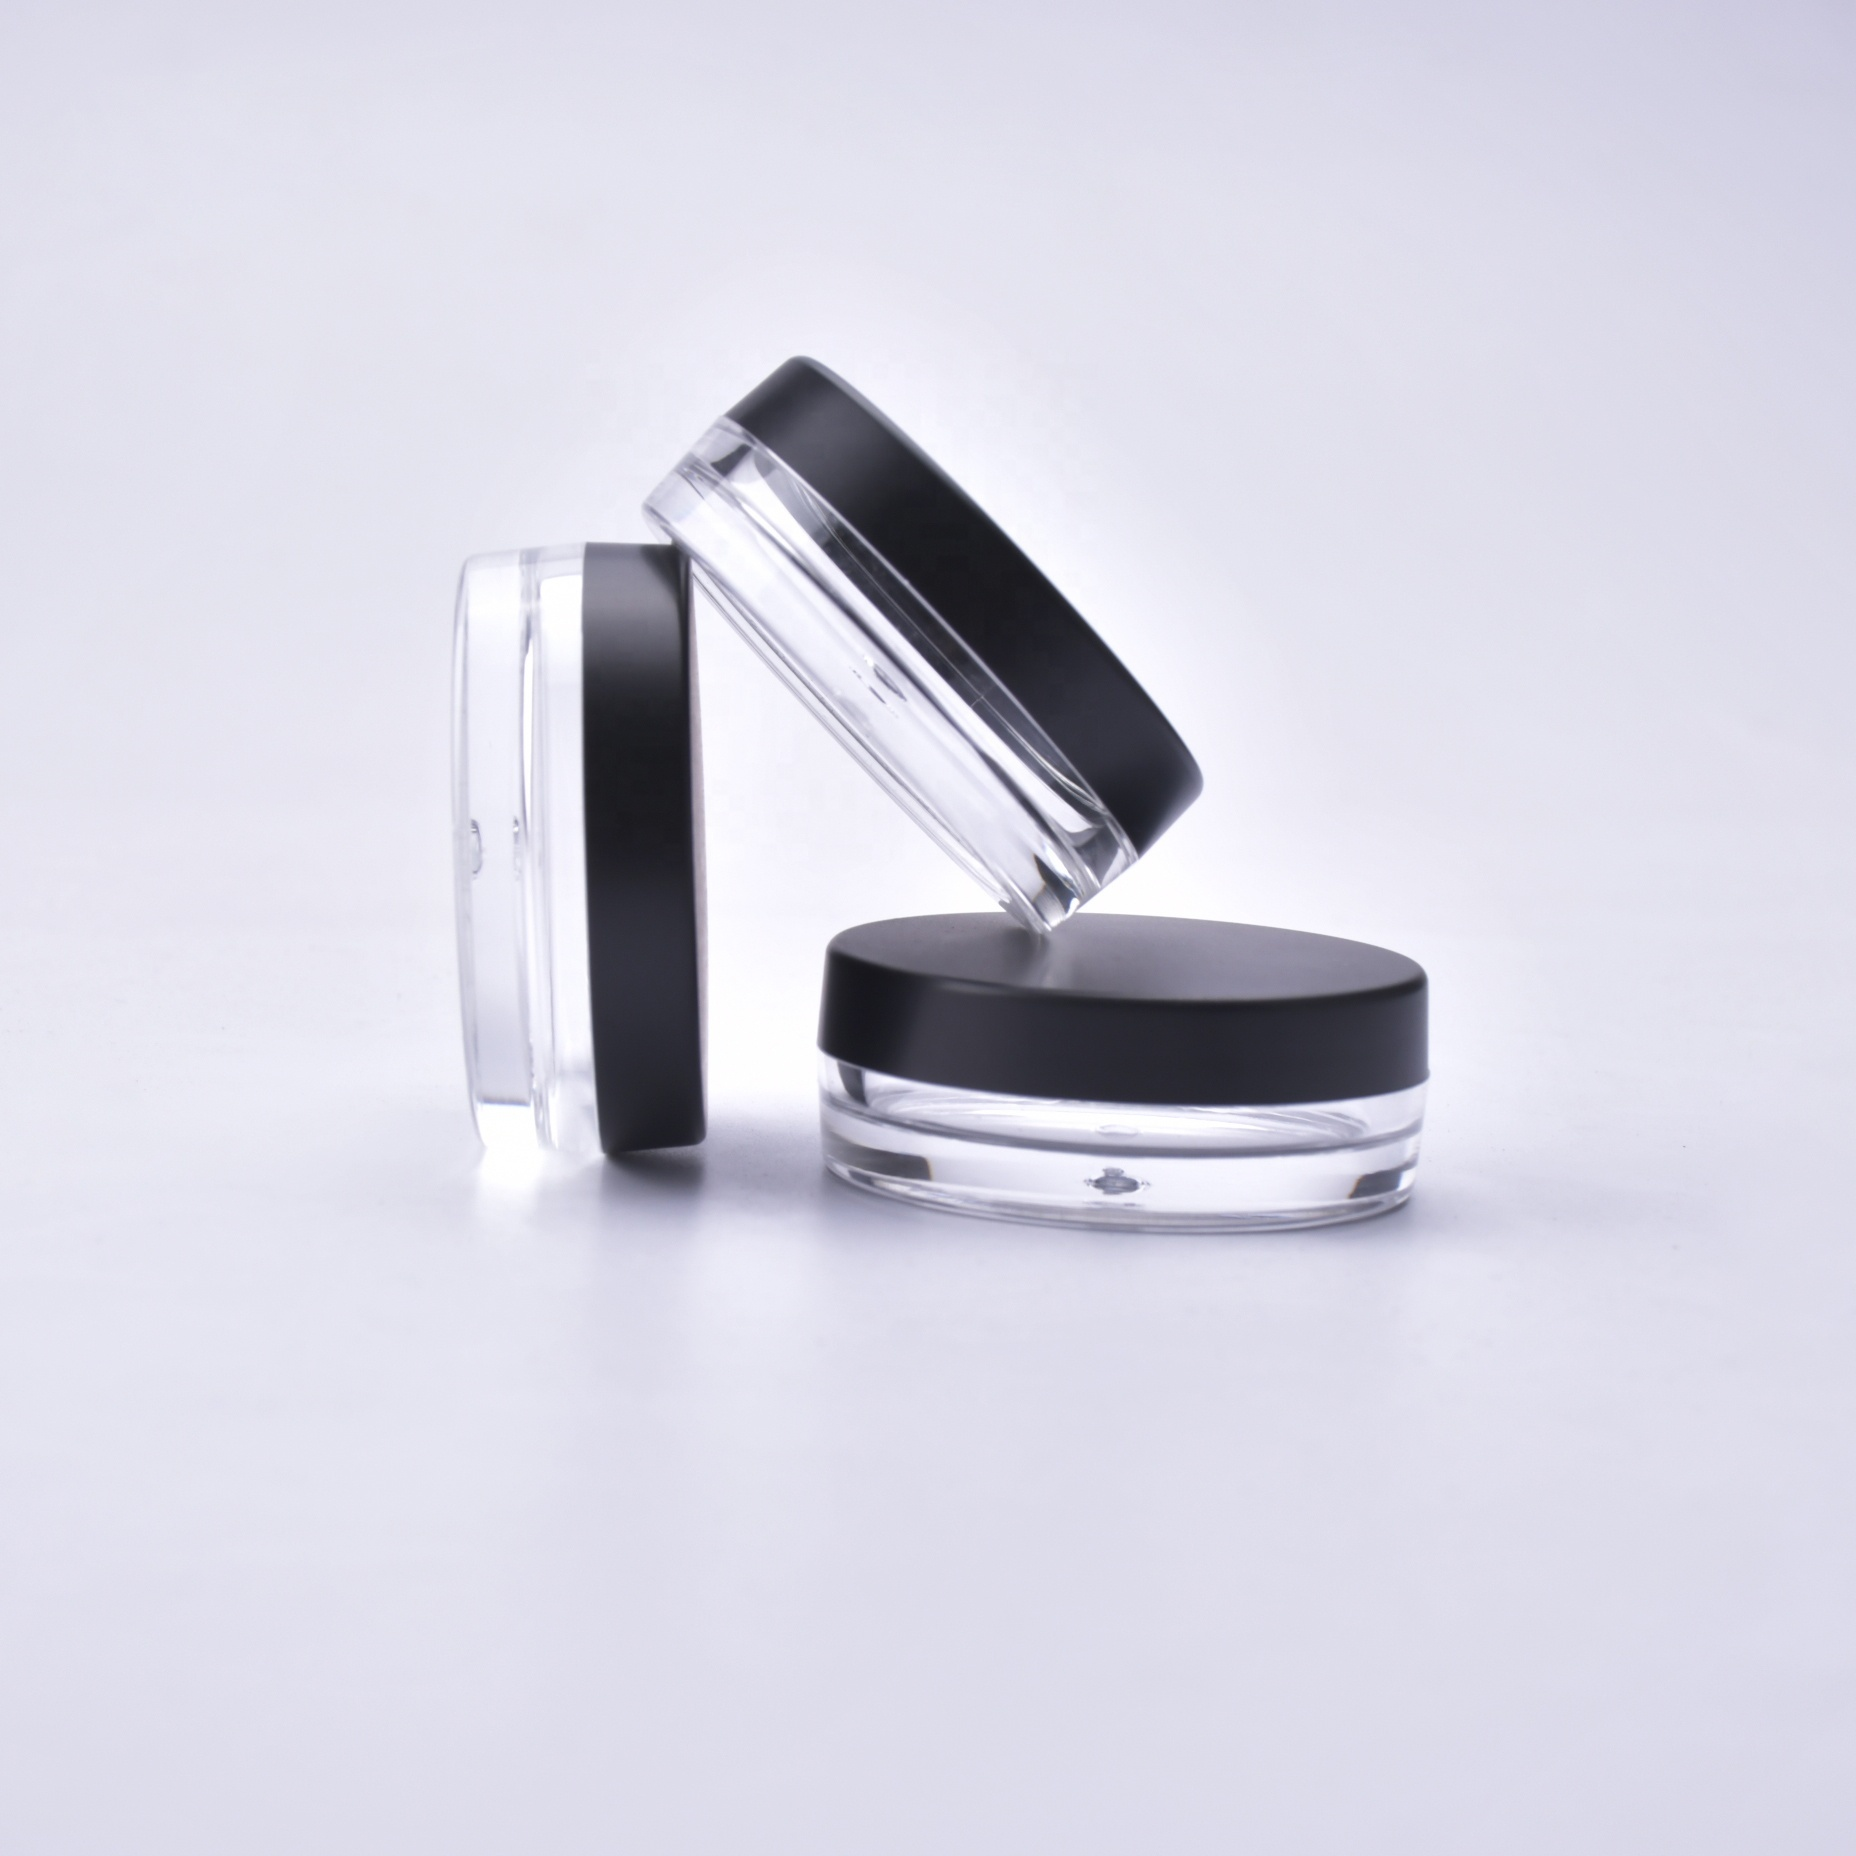 New powder jar without Sifter 10g Cosmetic jars